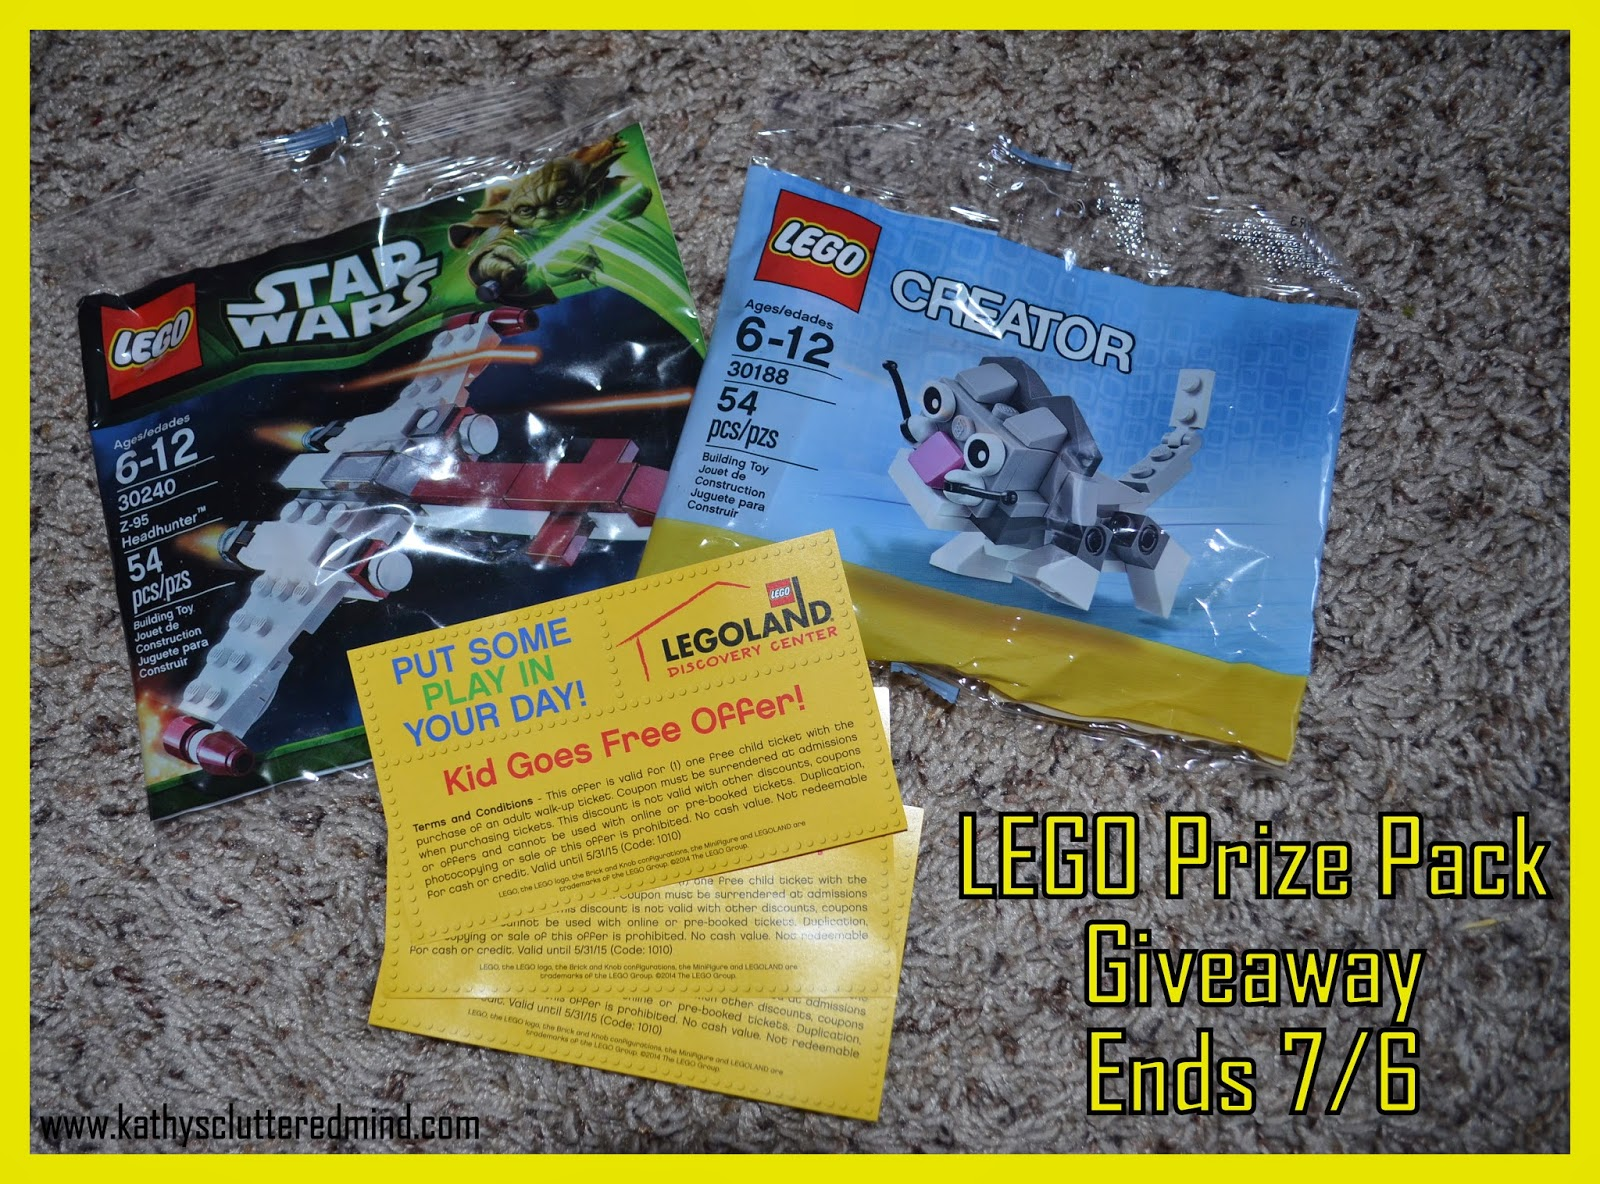 Kathys cluttered mind atlanta lego kidsfest review and star wars headhunter set 30240 as well as 2 great coupons for legoland discovery center atlanta buy 1 adult ticket get 1 kid free exp 53115 fandeluxe Images